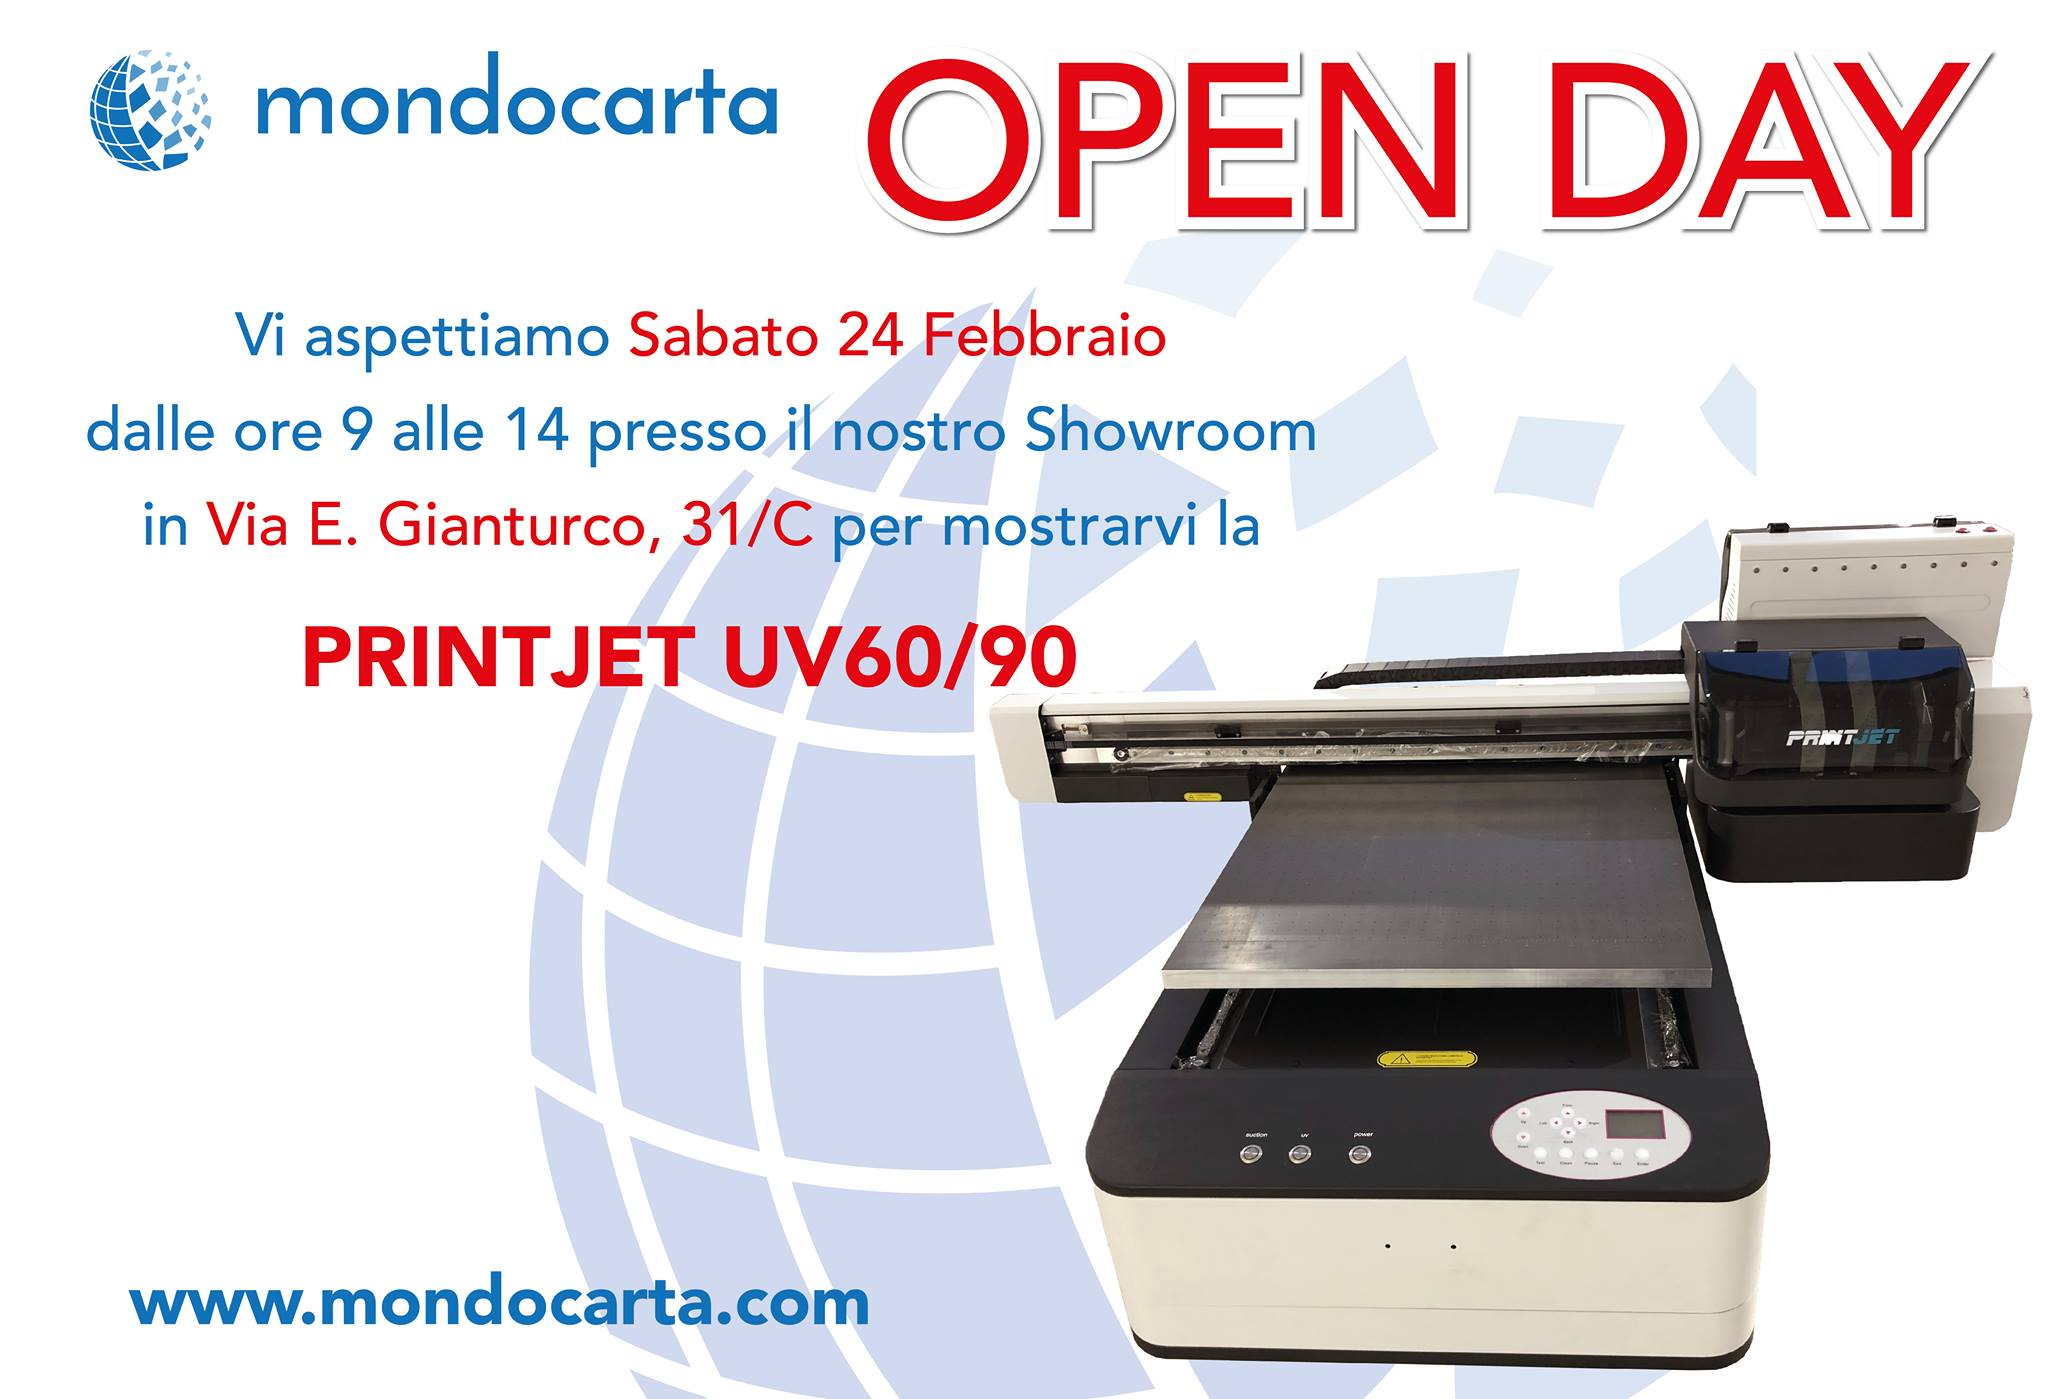 open day mondocarta - Print Jet UV 60/90